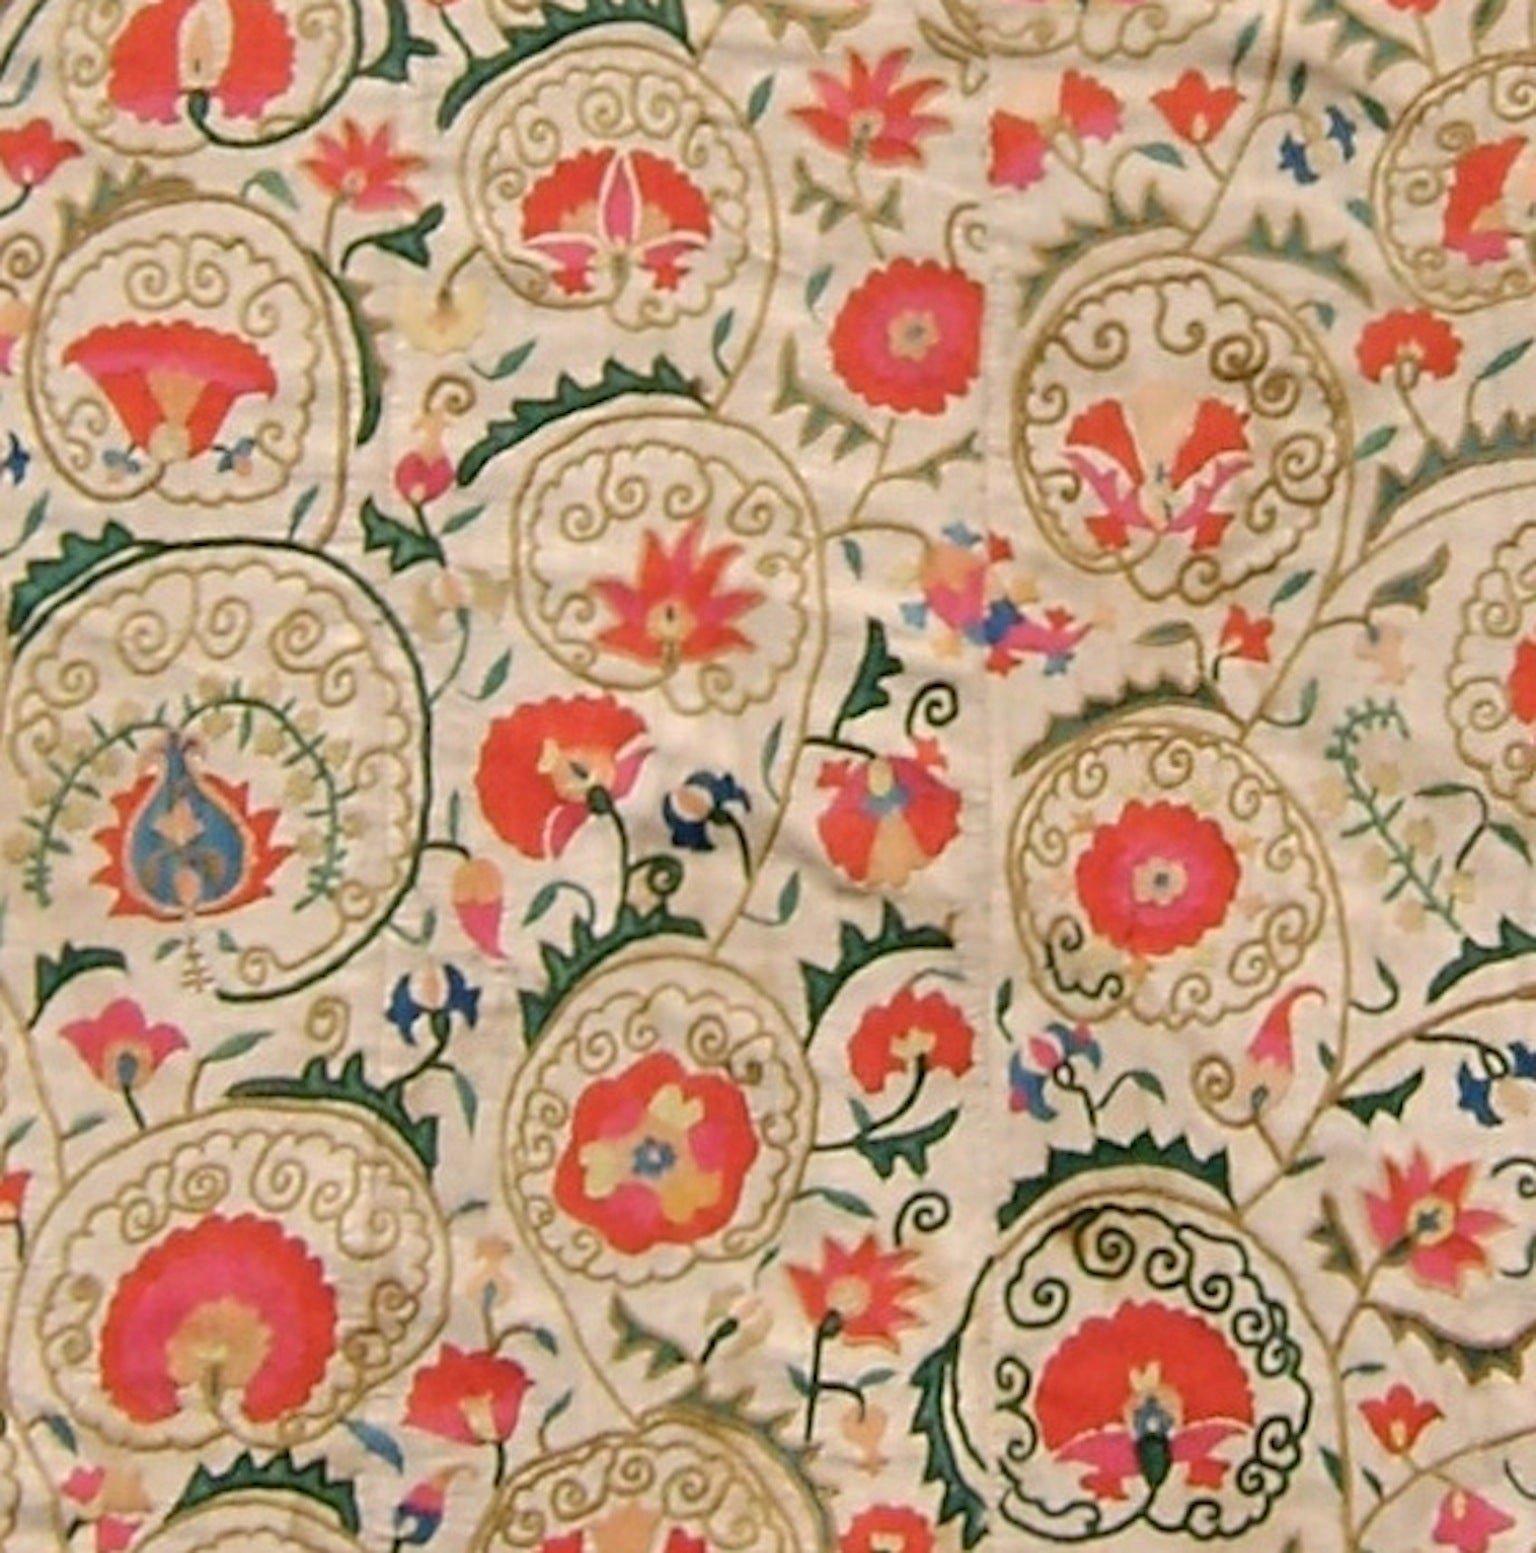 19th Century Light Floral Suzani Embroidered Textile Rug